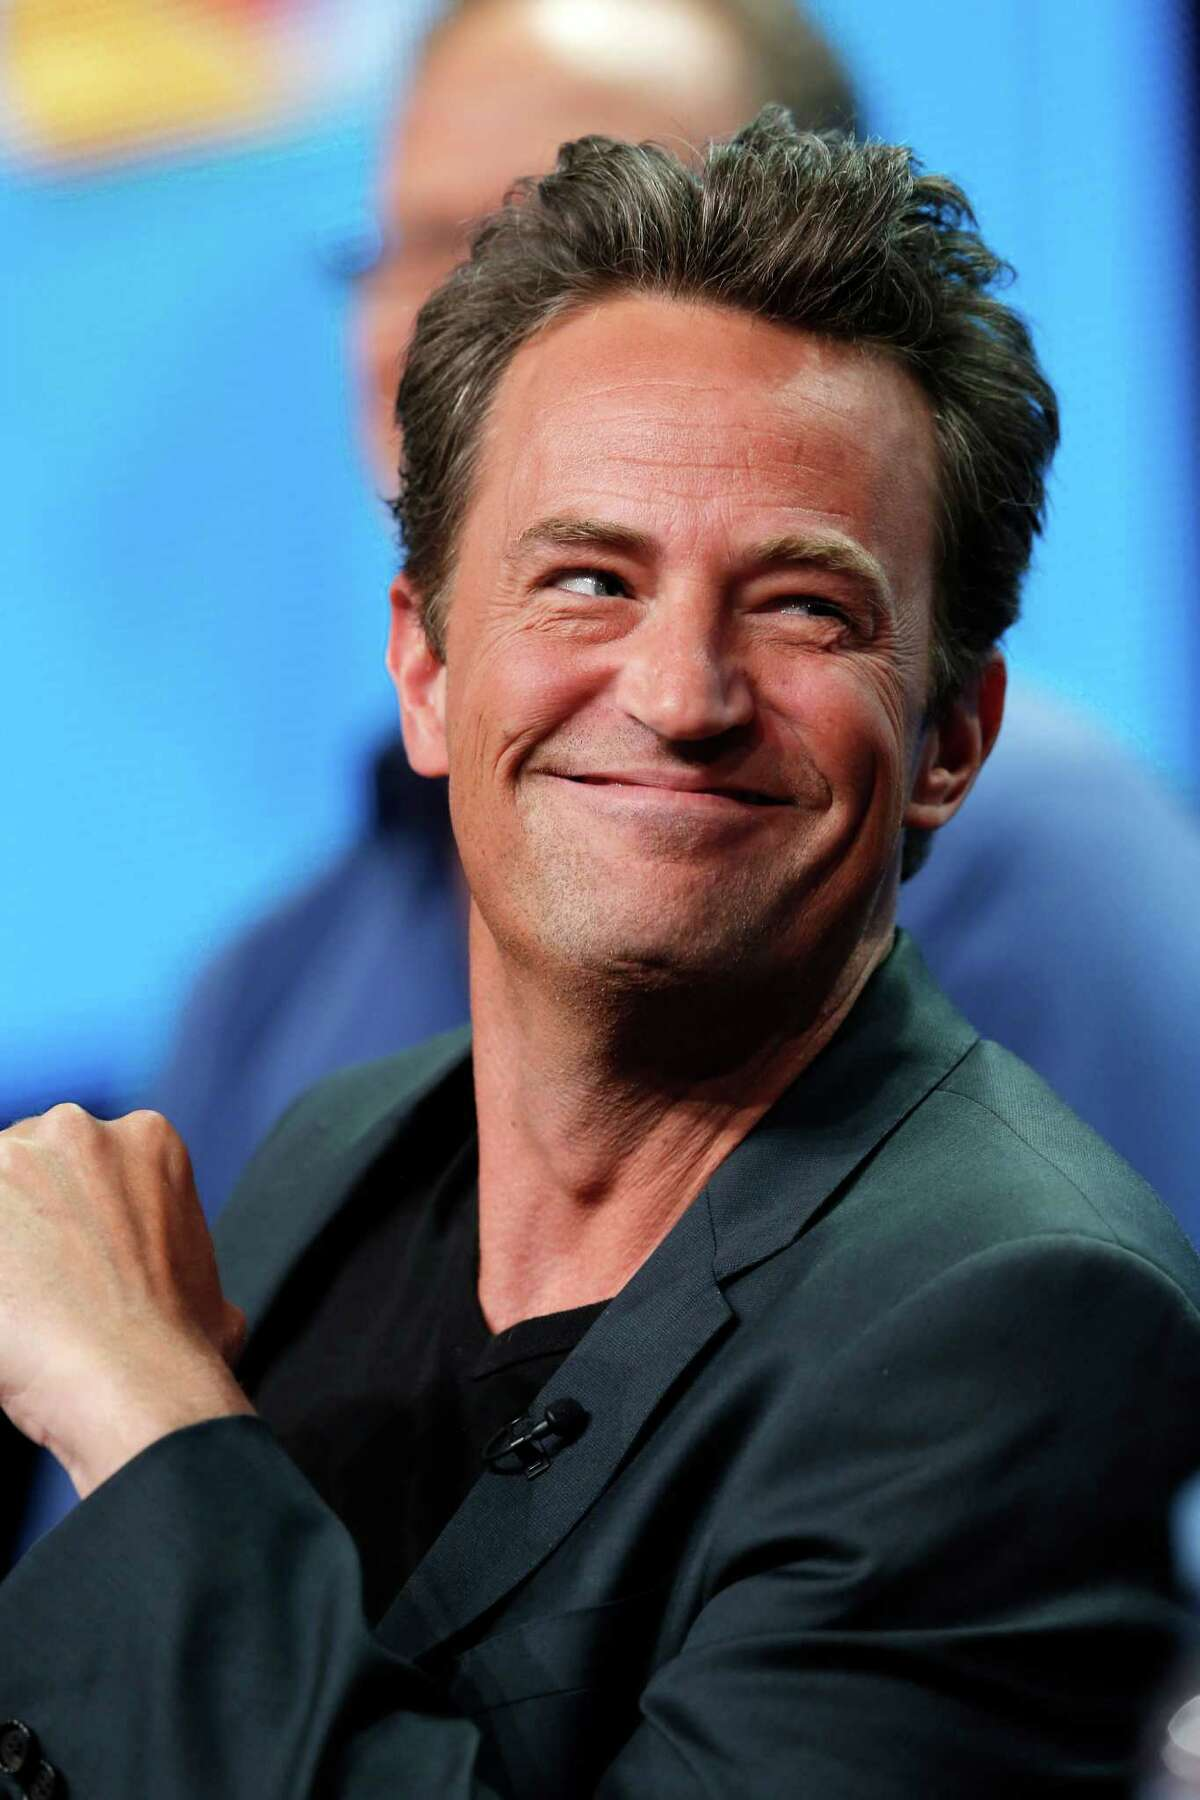 BOY2003: Matthew(Pictured: Actor Matthew Perry)